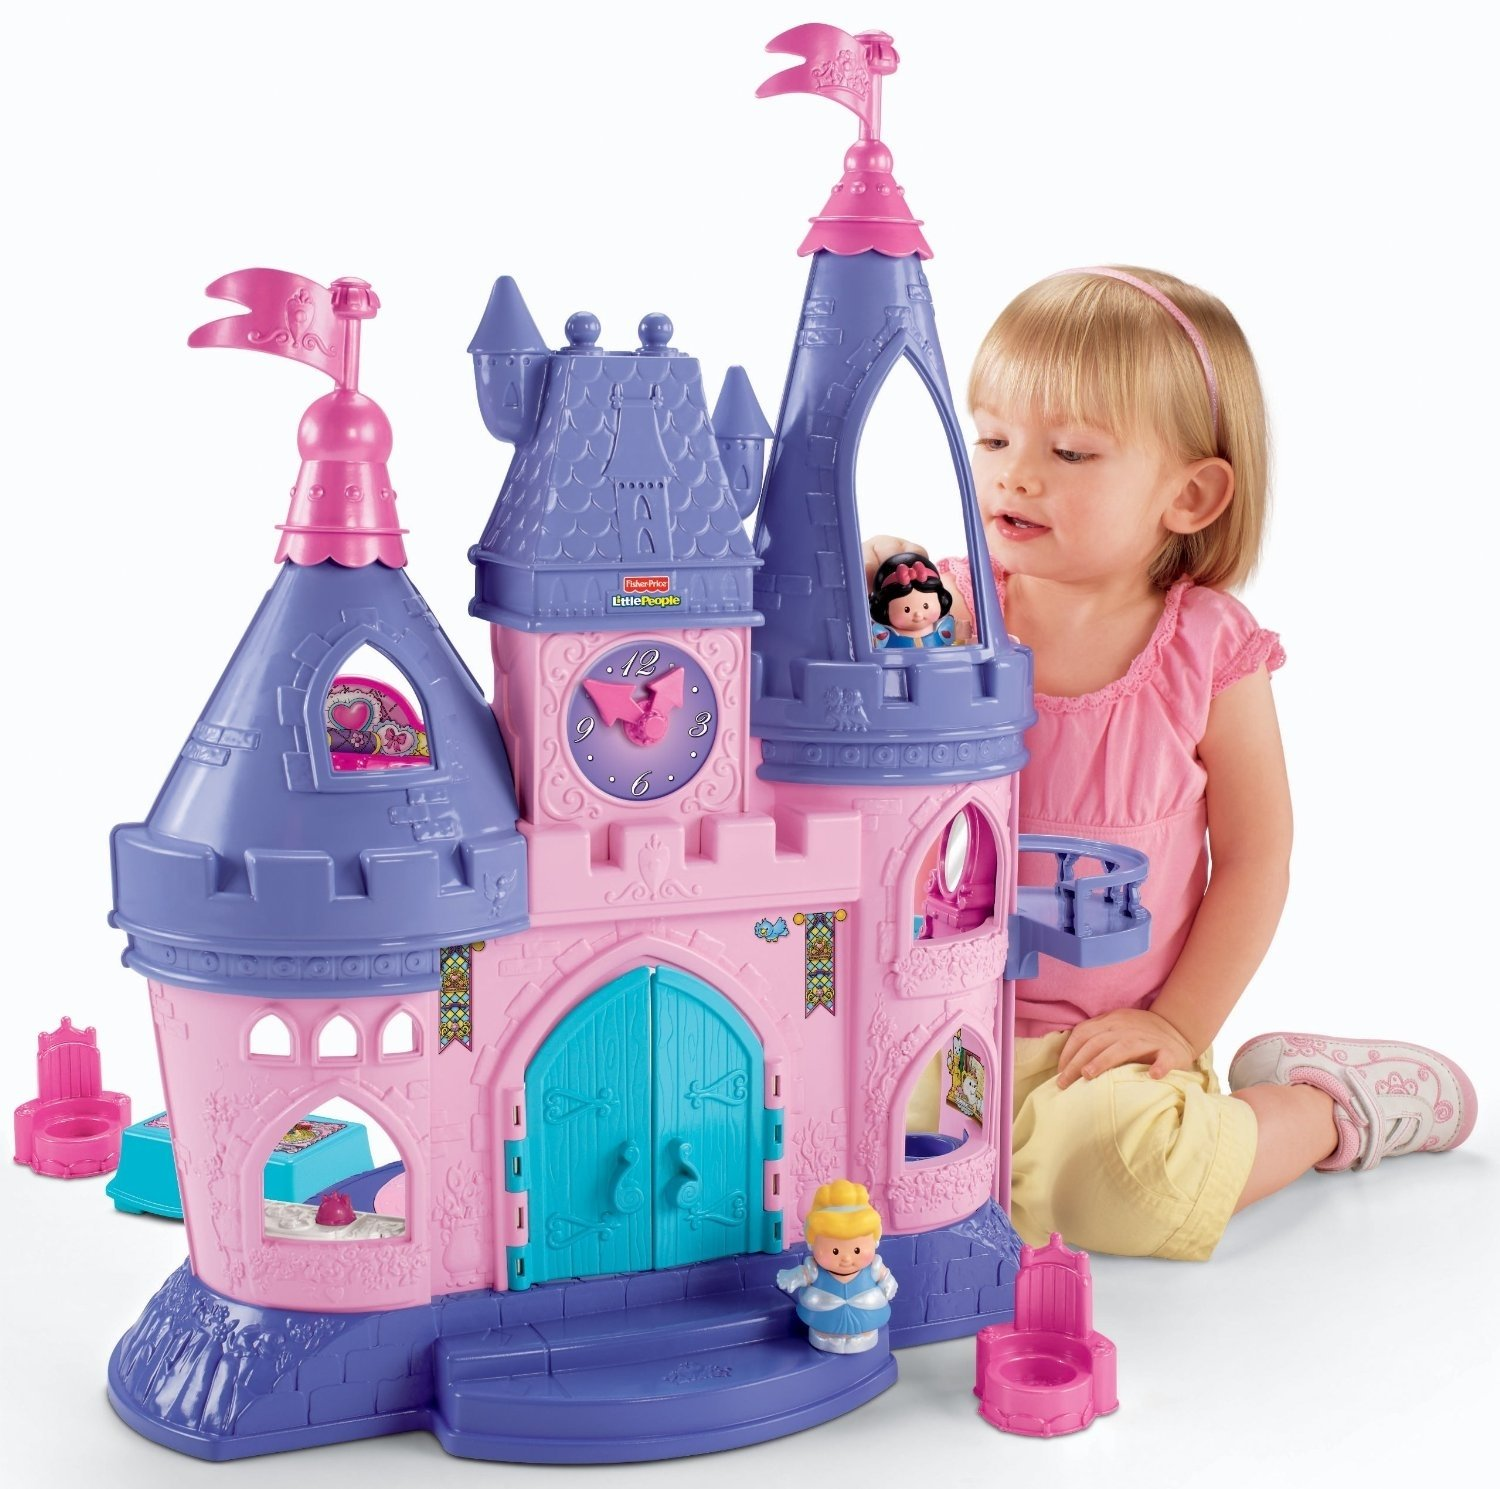 10 Most Recommended Gift Ideas 2 Year Old Girl best gifts for 2 year old girls in 2017 disney princess songs 4 2020